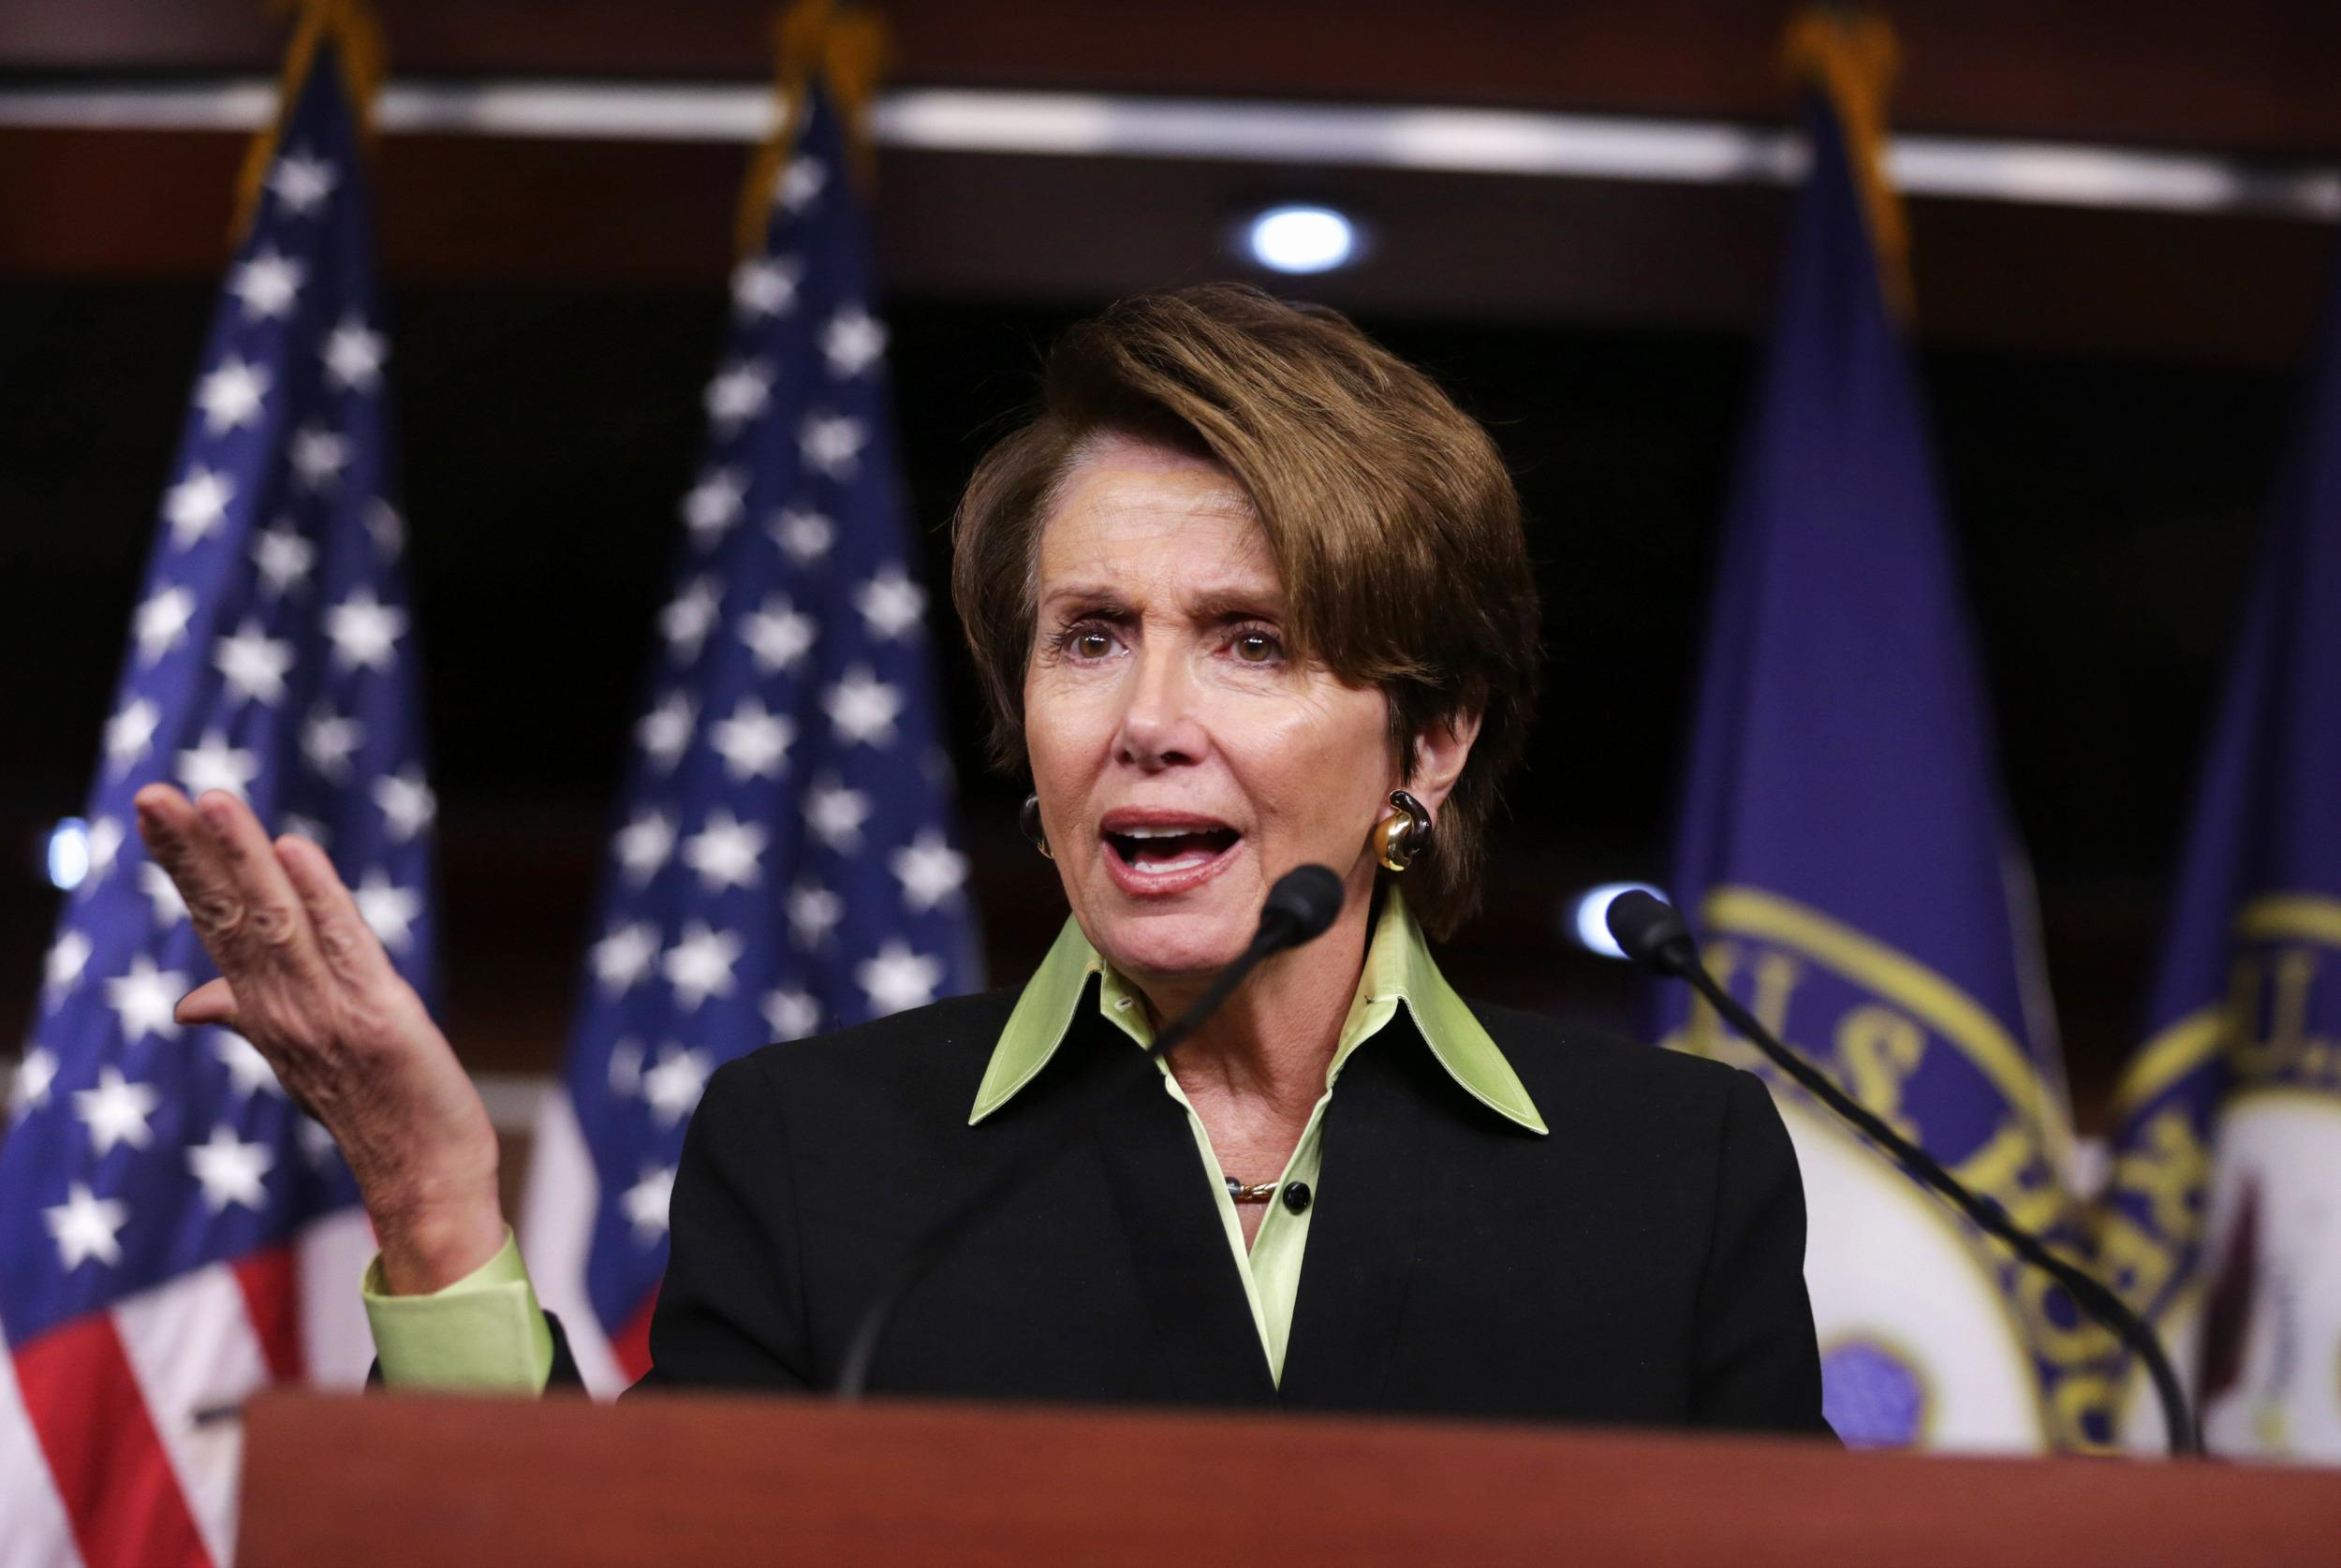 Image: Nancy Pelosi Holds Weekly Press Conference